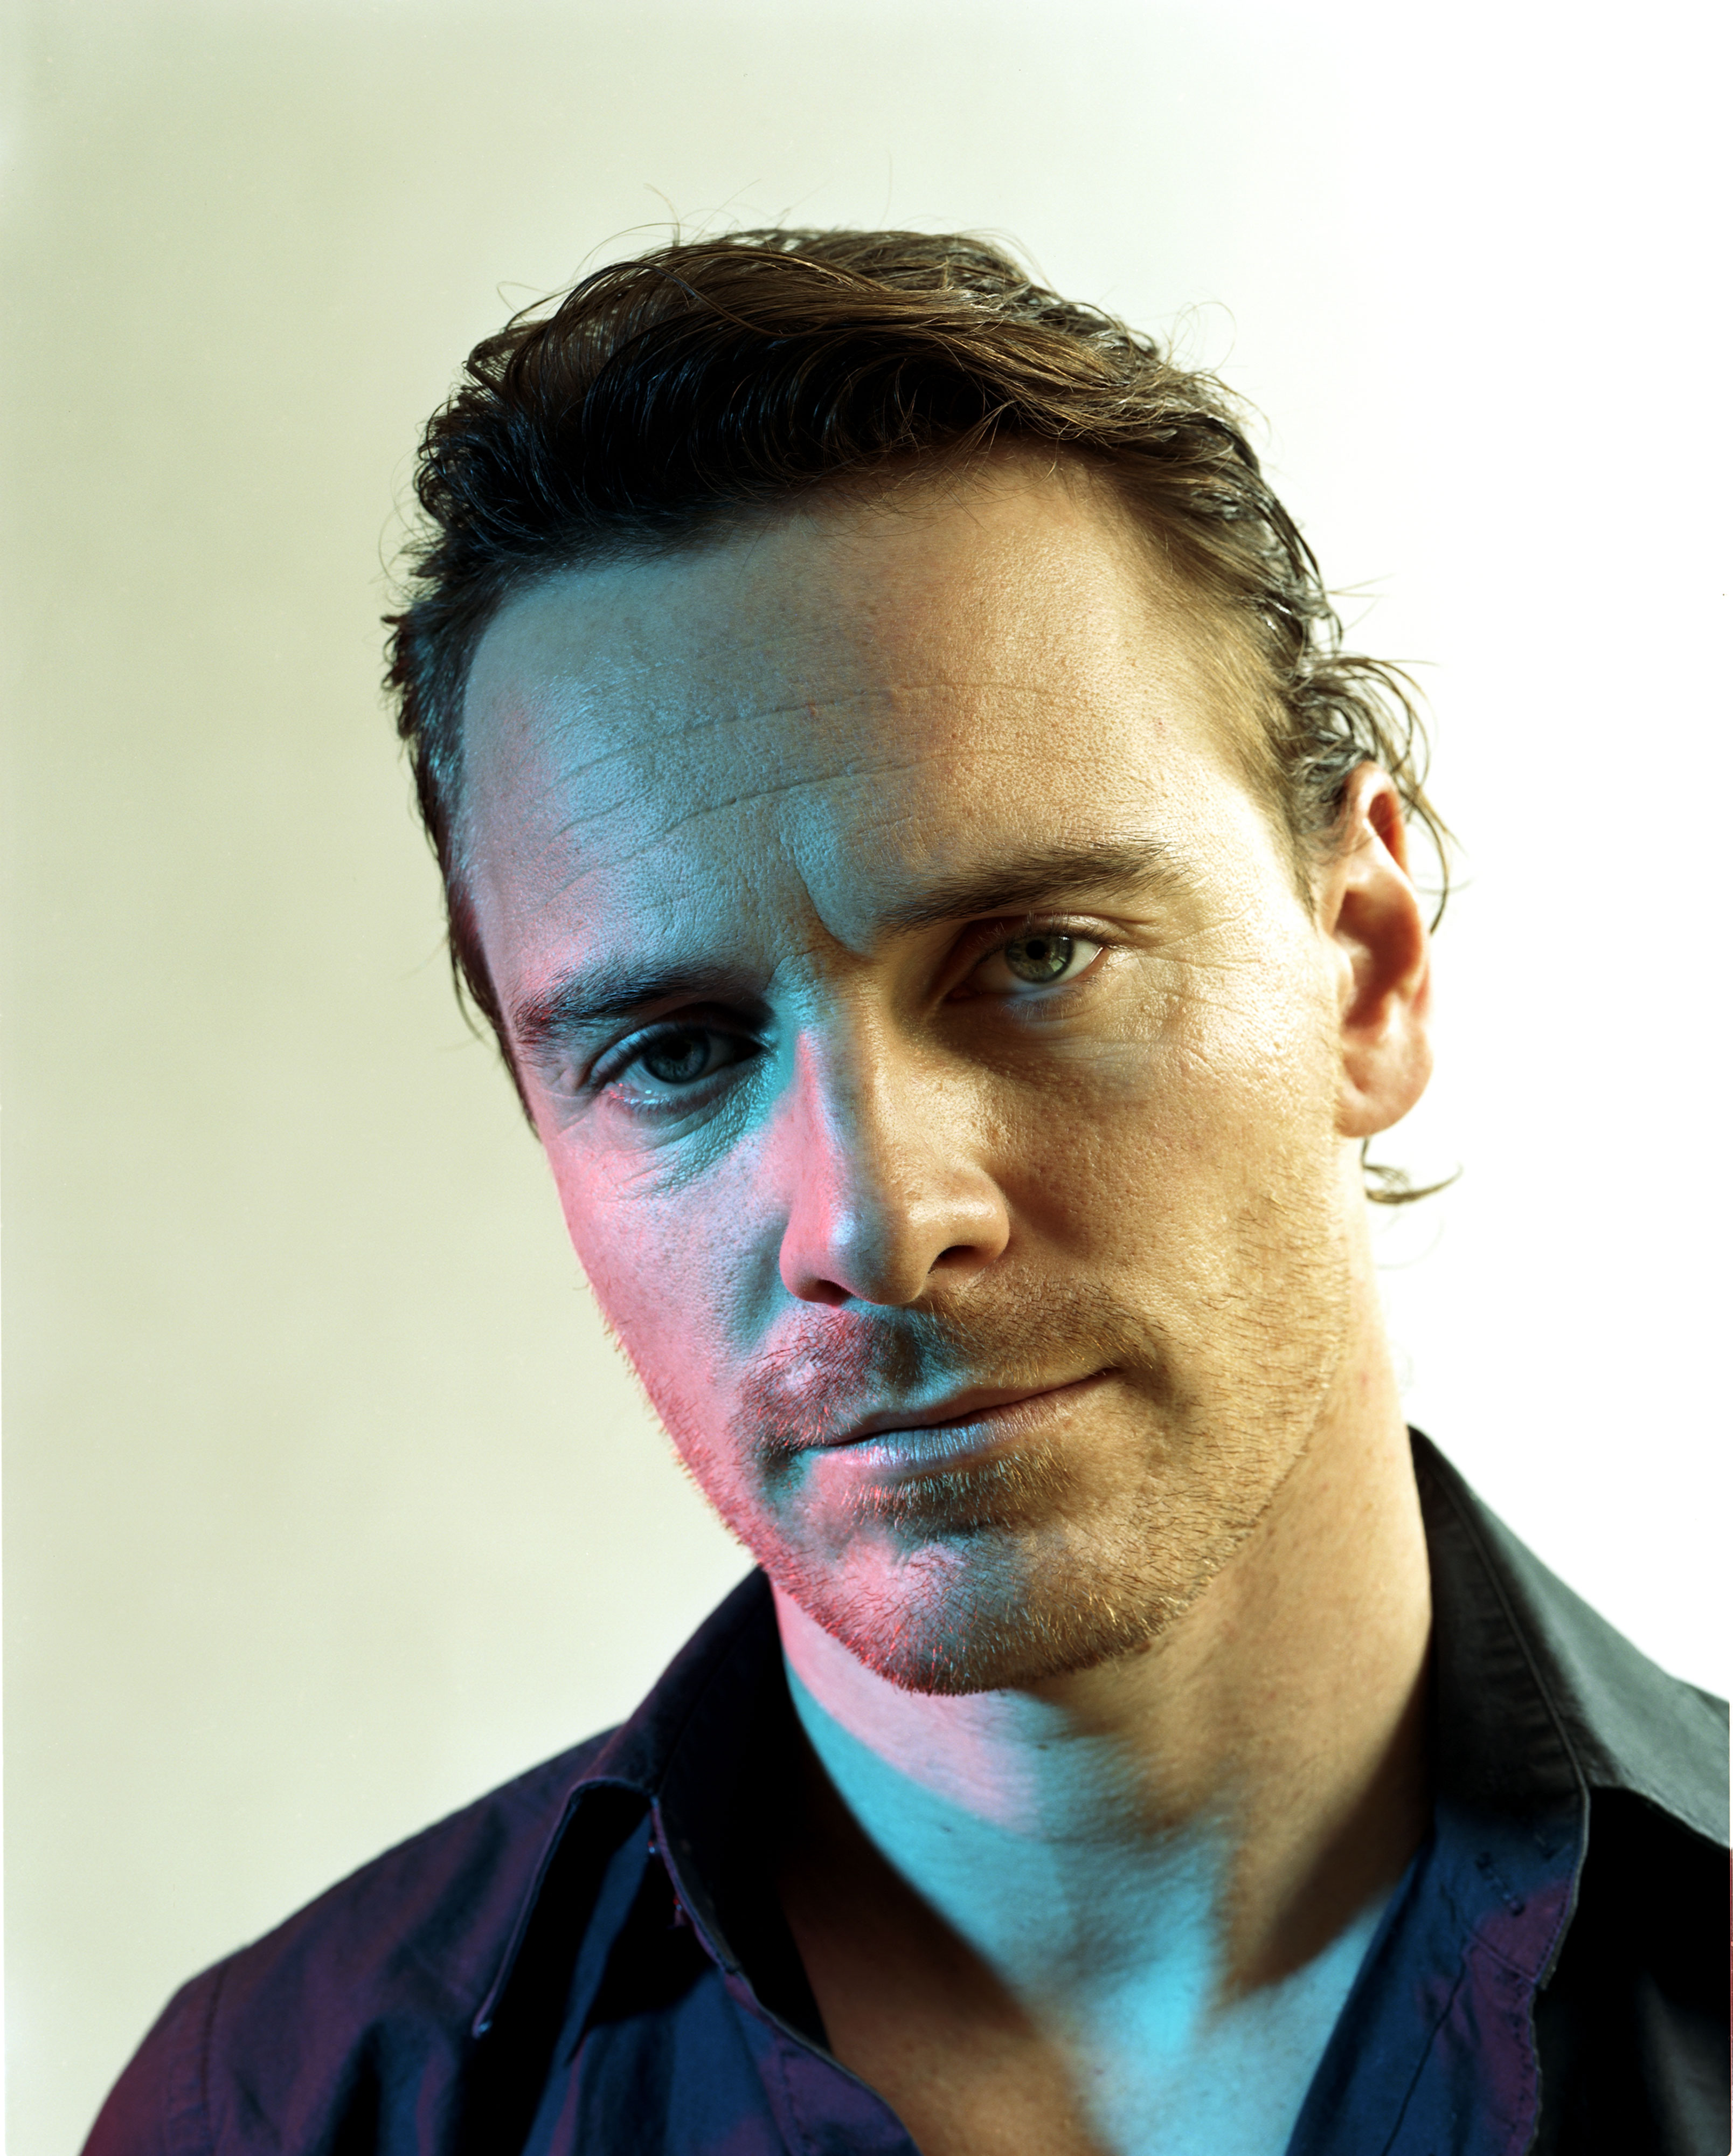 Michael fassbender fish tank - 1 part 4